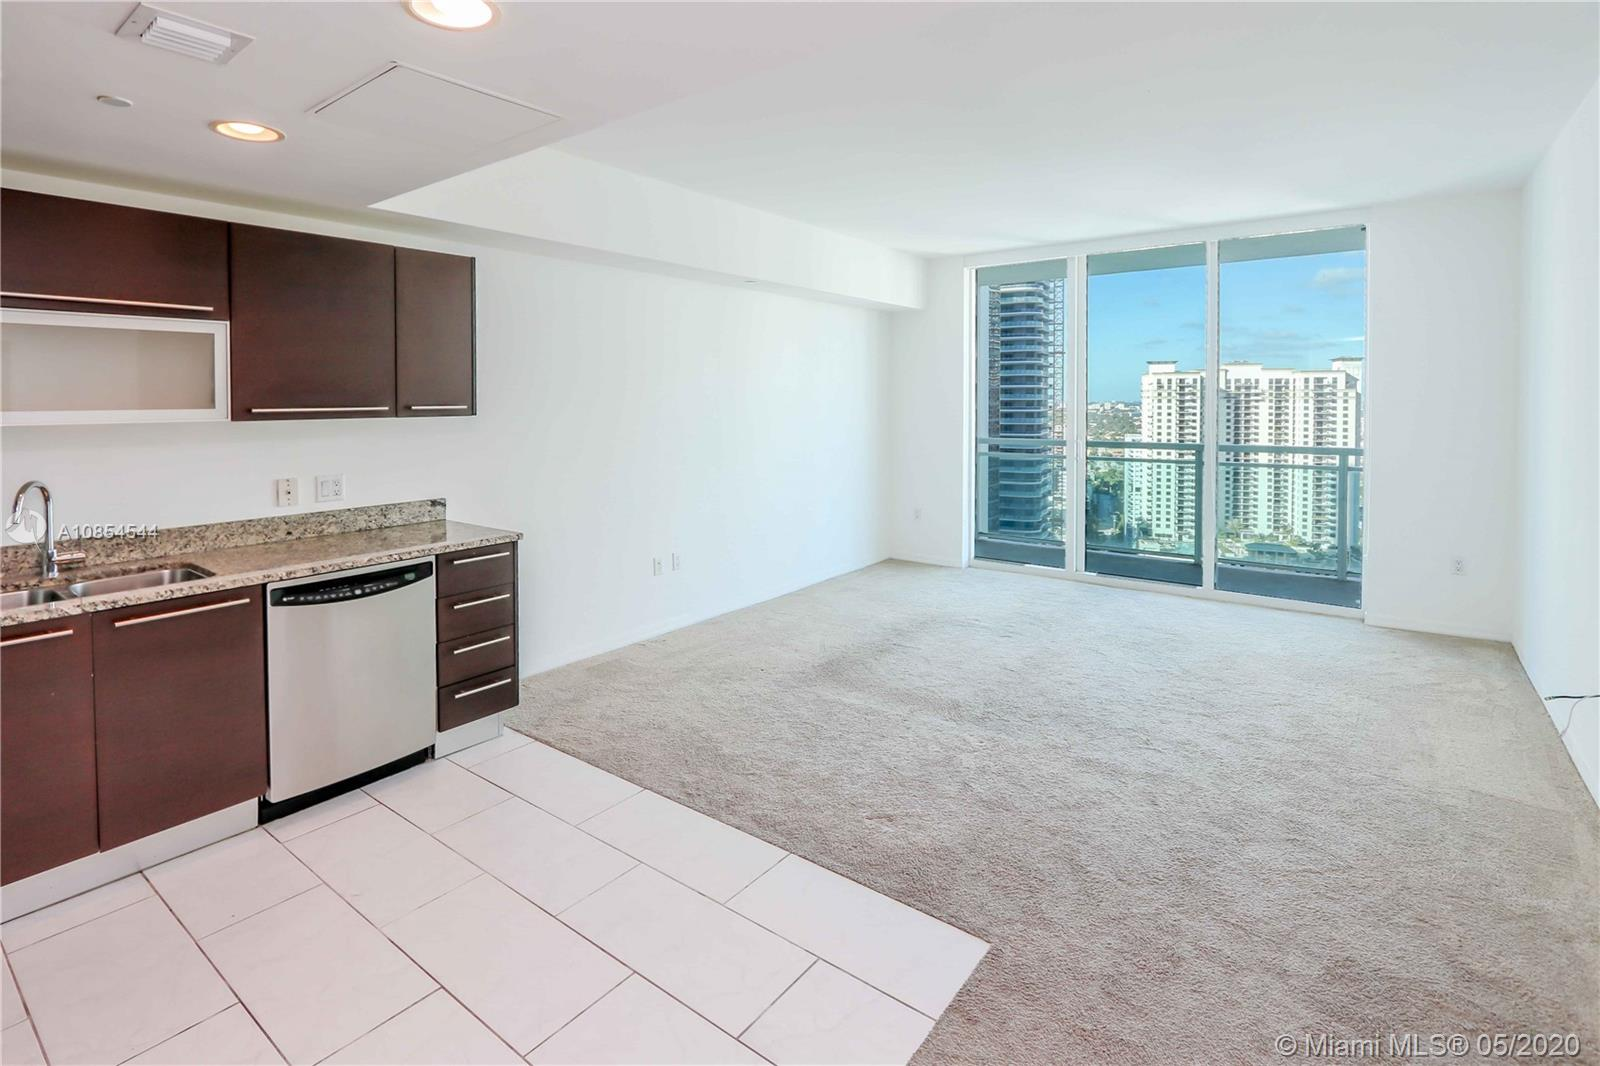 The Plaza on Brickell 2 #3309 - 951 Brickell Ave #3309, Miami, FL 33131